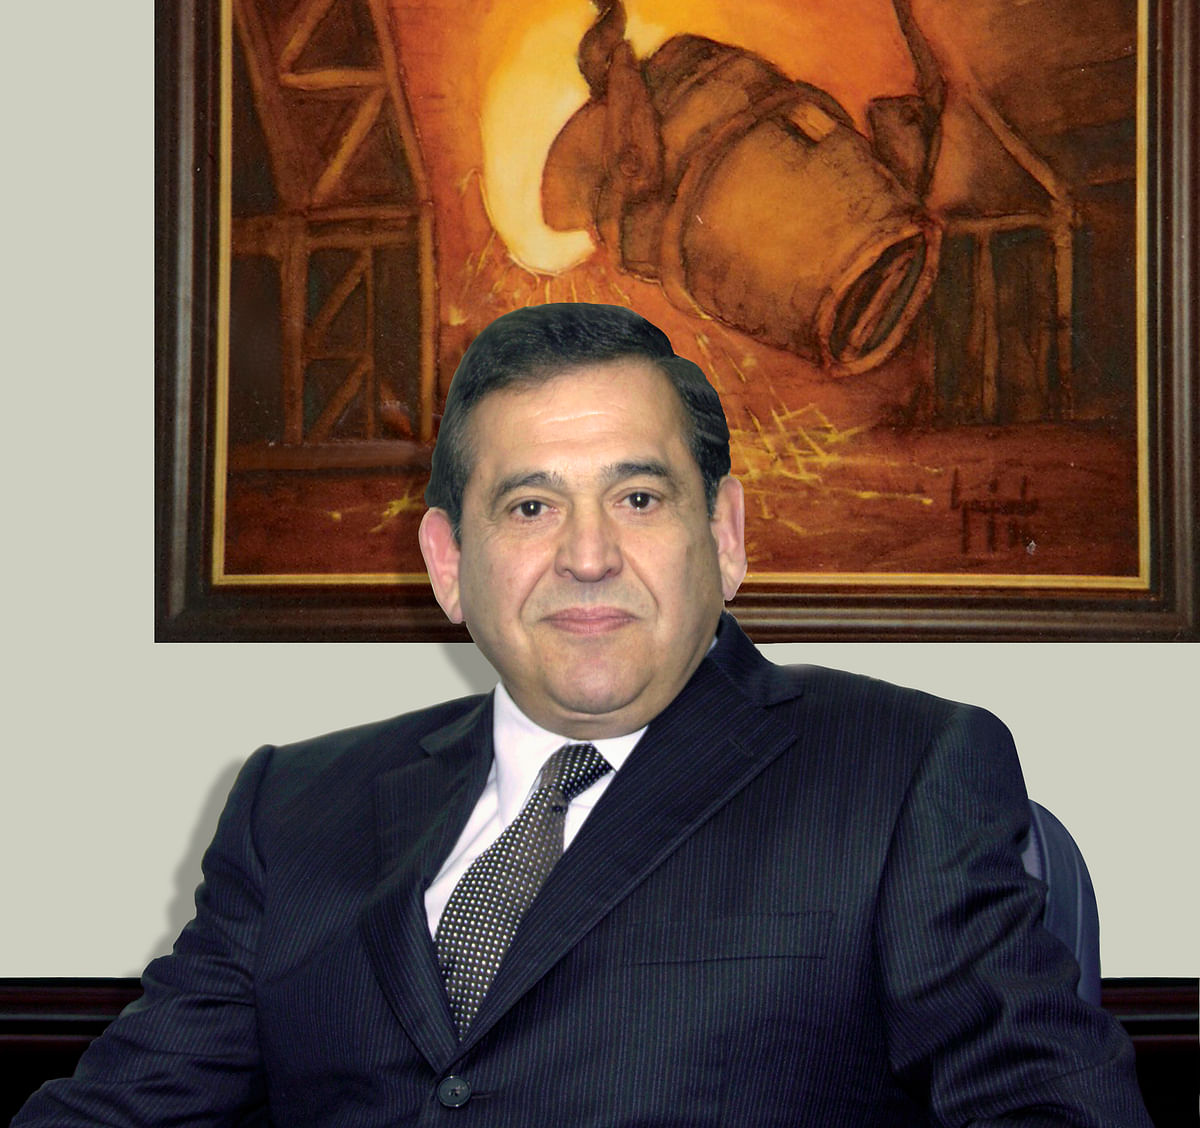 Judge Orders Release of Mexican Steel Tycoon Mr Alonso Ancira